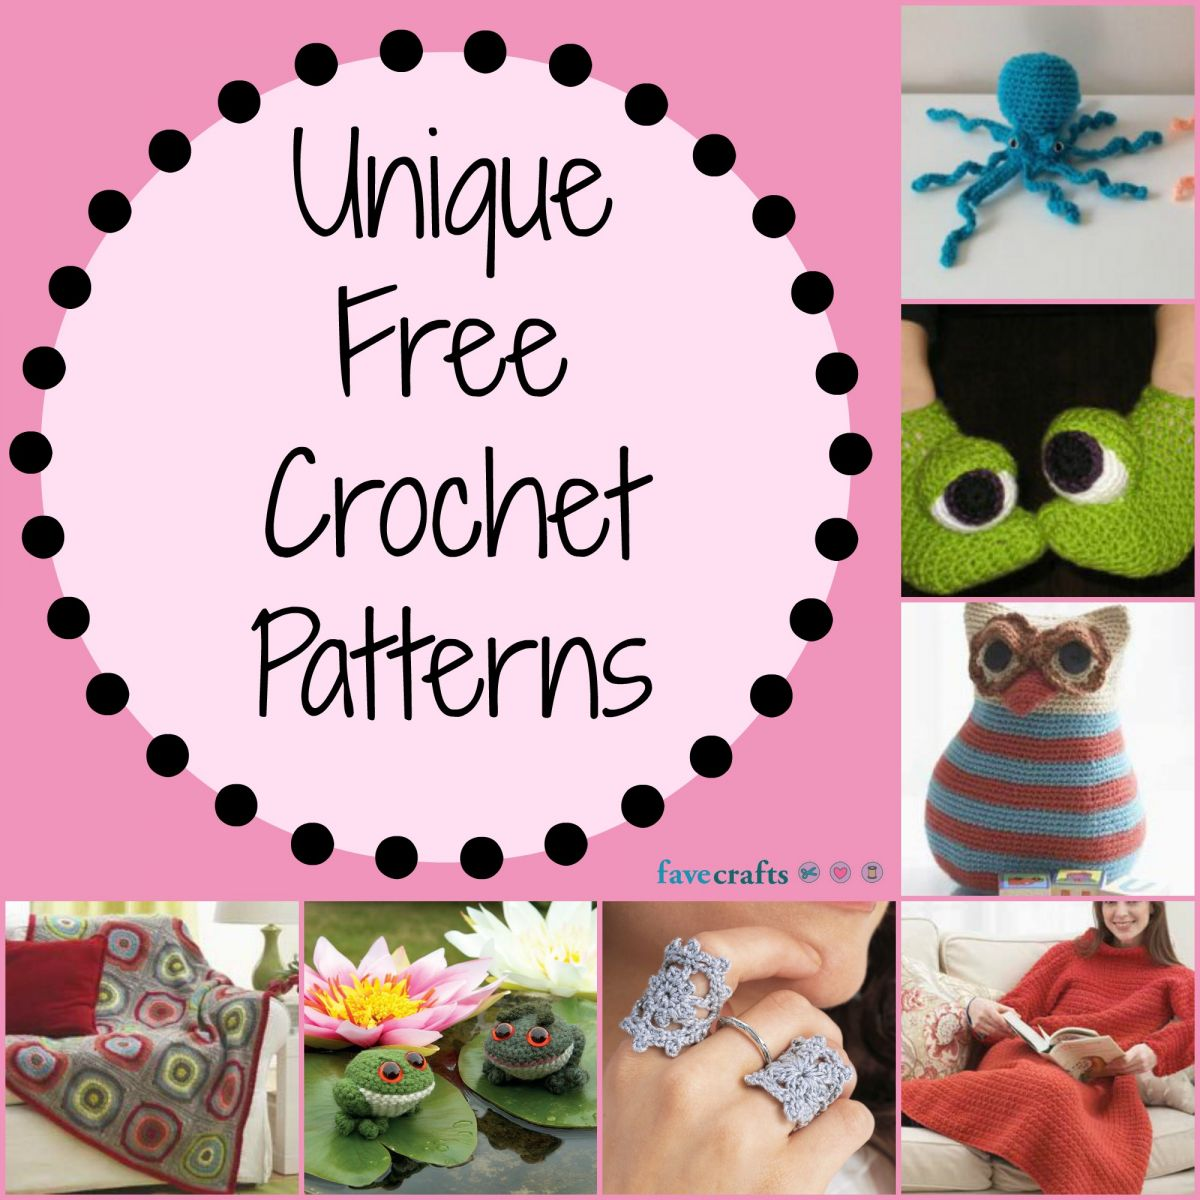 17 unique free crochet patterns favecrafts 17 unique crochet patterns bankloansurffo Image collections